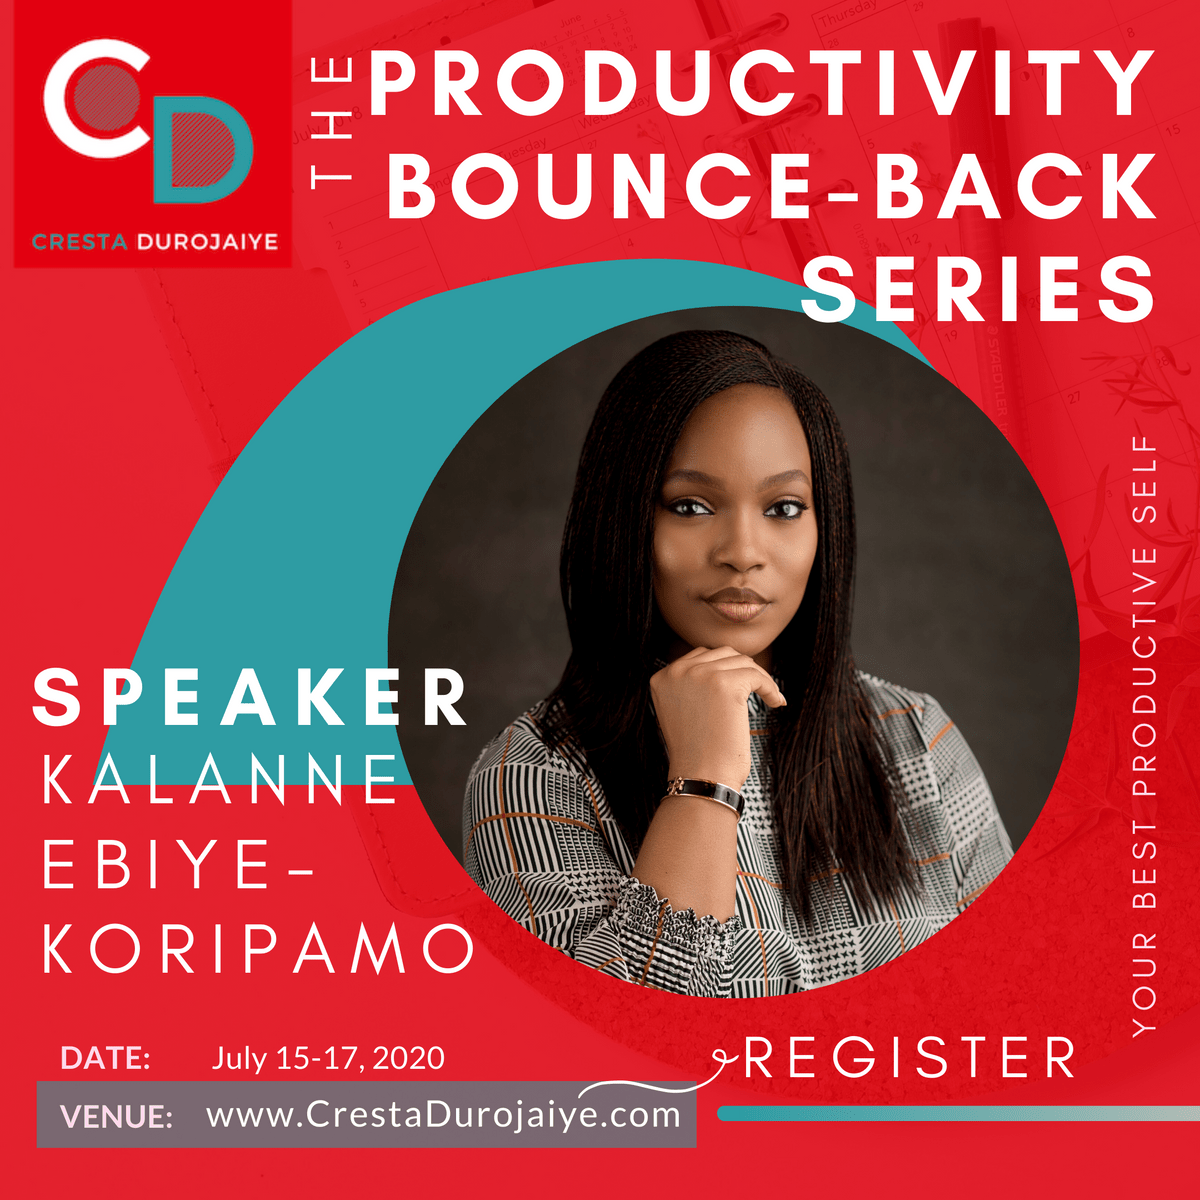 Kalanne Ebiye Koripamo is speaking at The Productivity Bounce Back Series